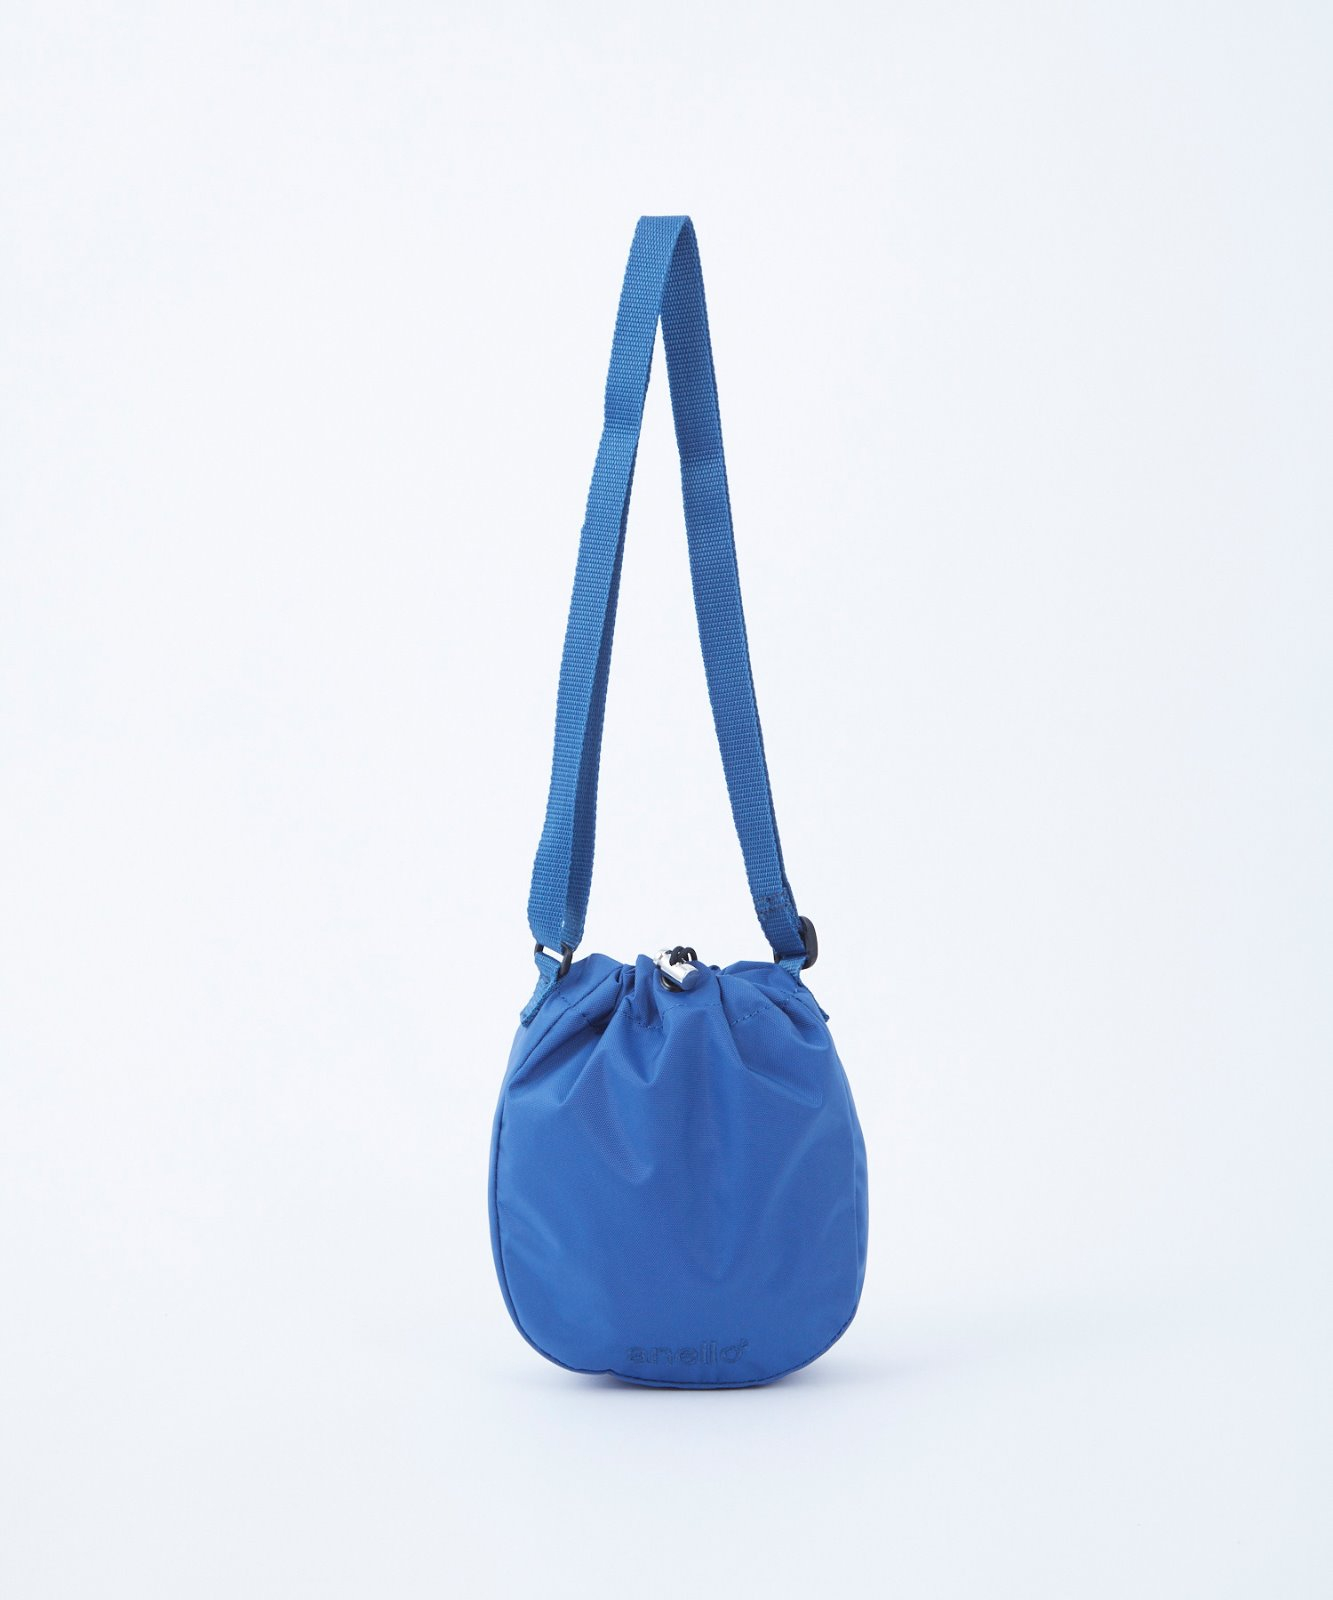 TOY TOTE/巾着ショルダーバッグ